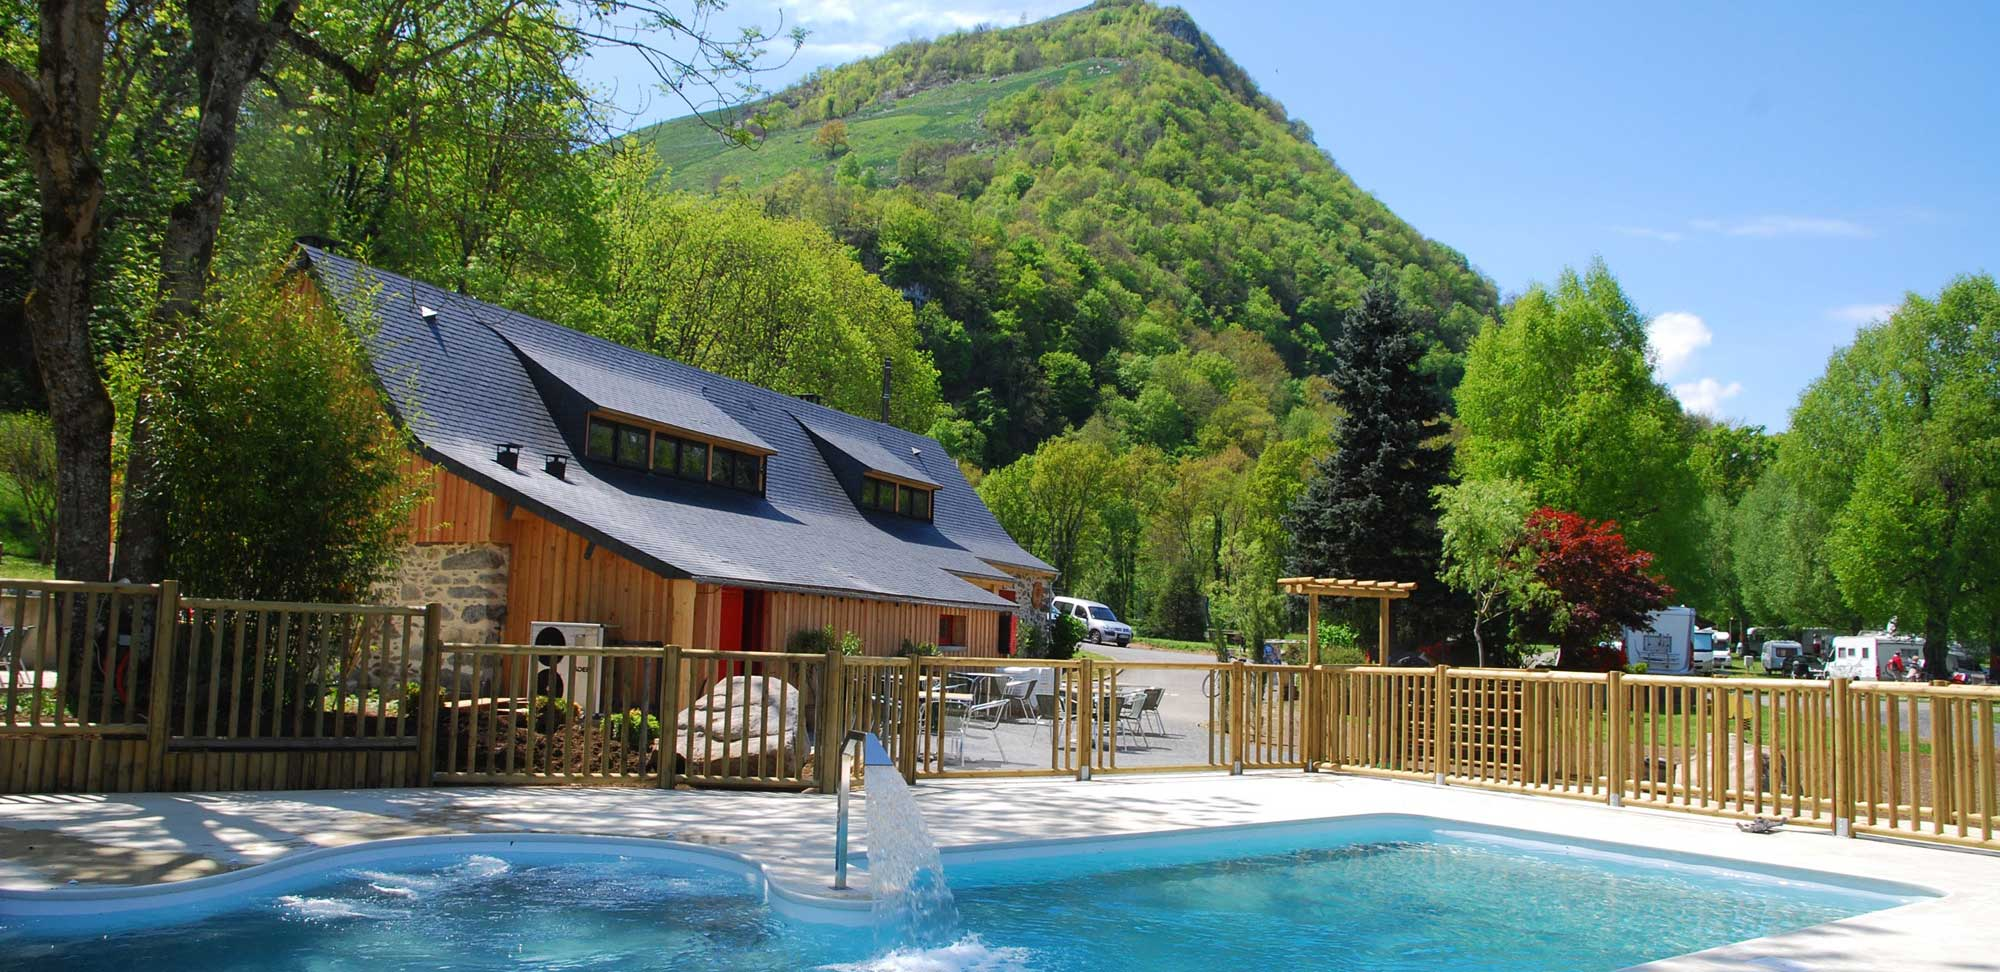 Piscine chauffée camping